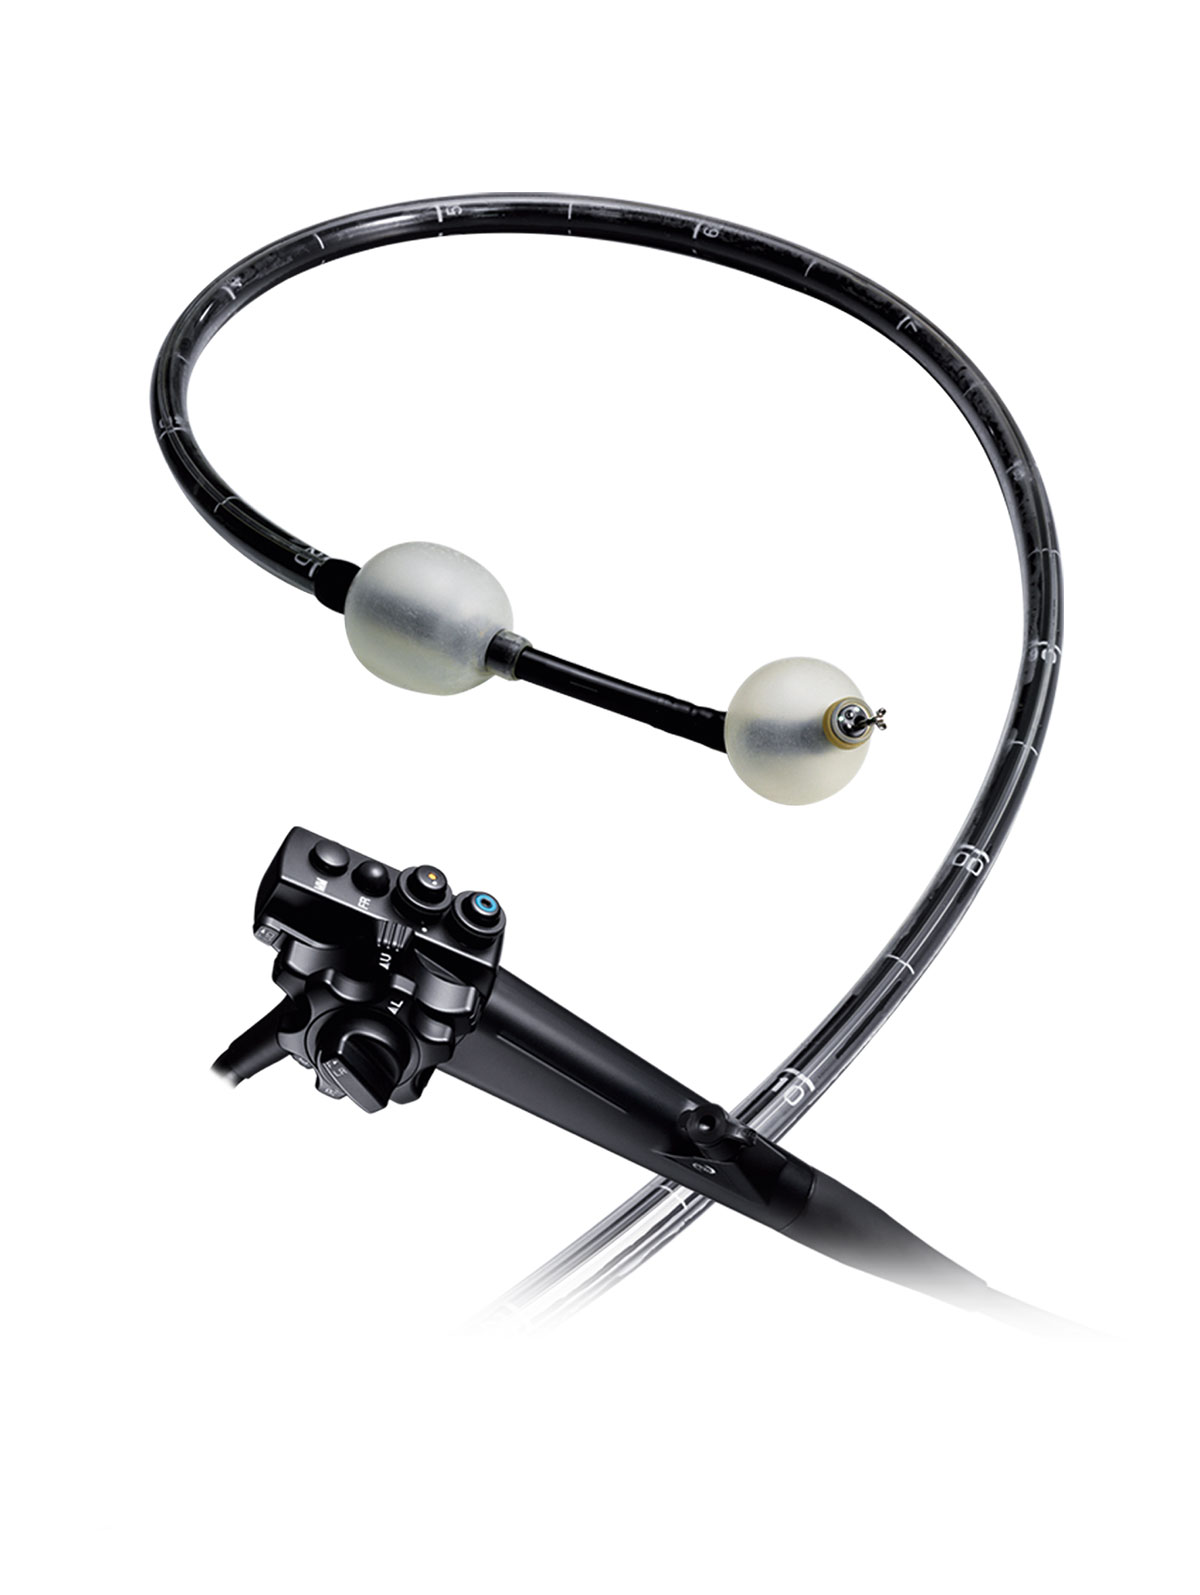 FujiFilm double-balloon endoscopy DBE